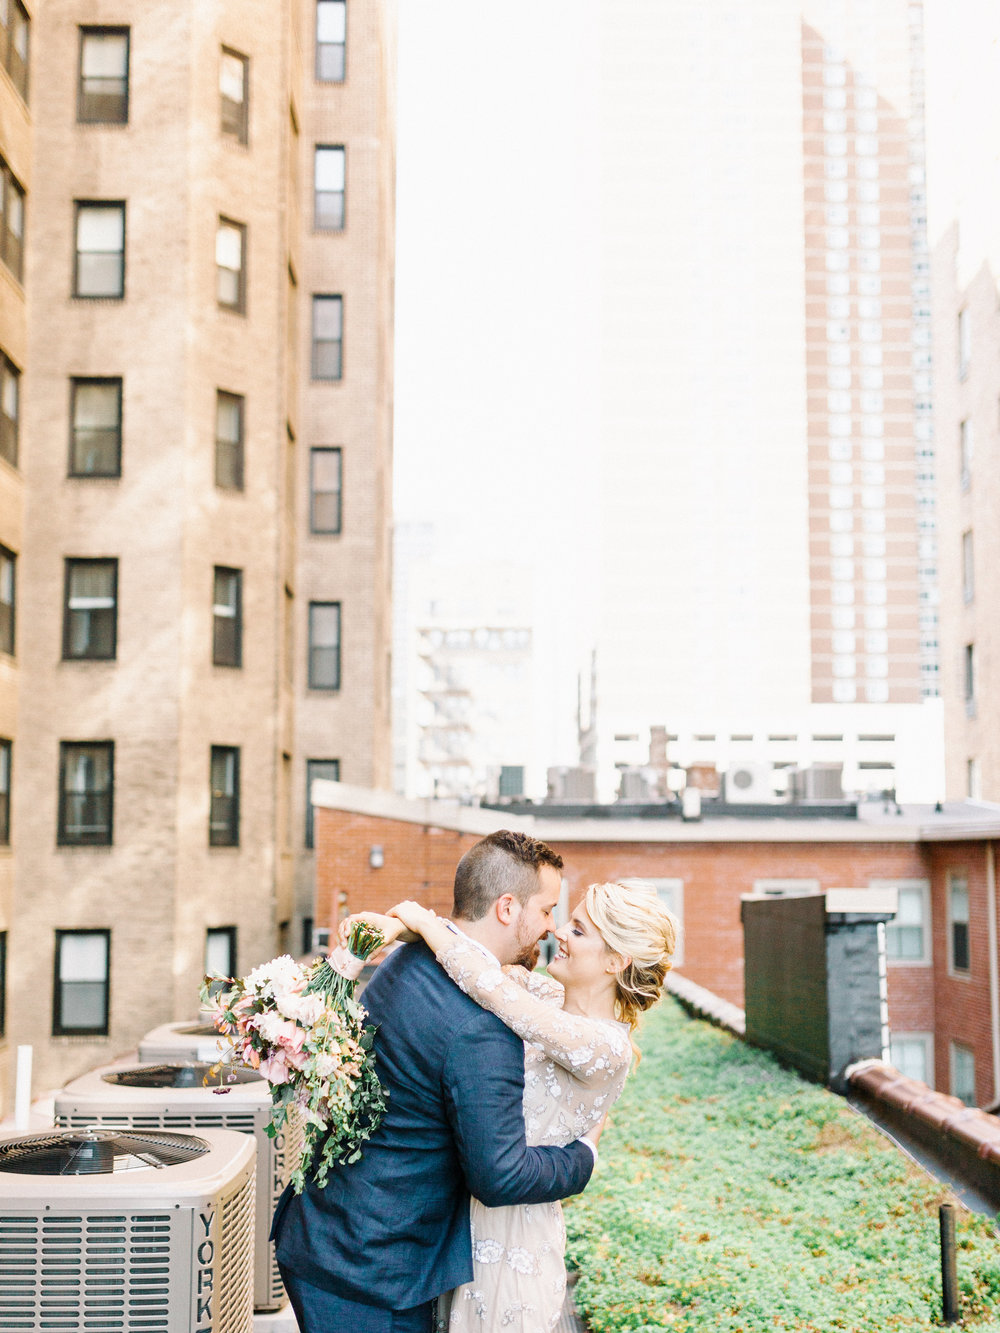 haley-richter-photographer-keristin-associate-woodlands-philadelphia-rabbit-rabbit-crew-elopement-069.jpg